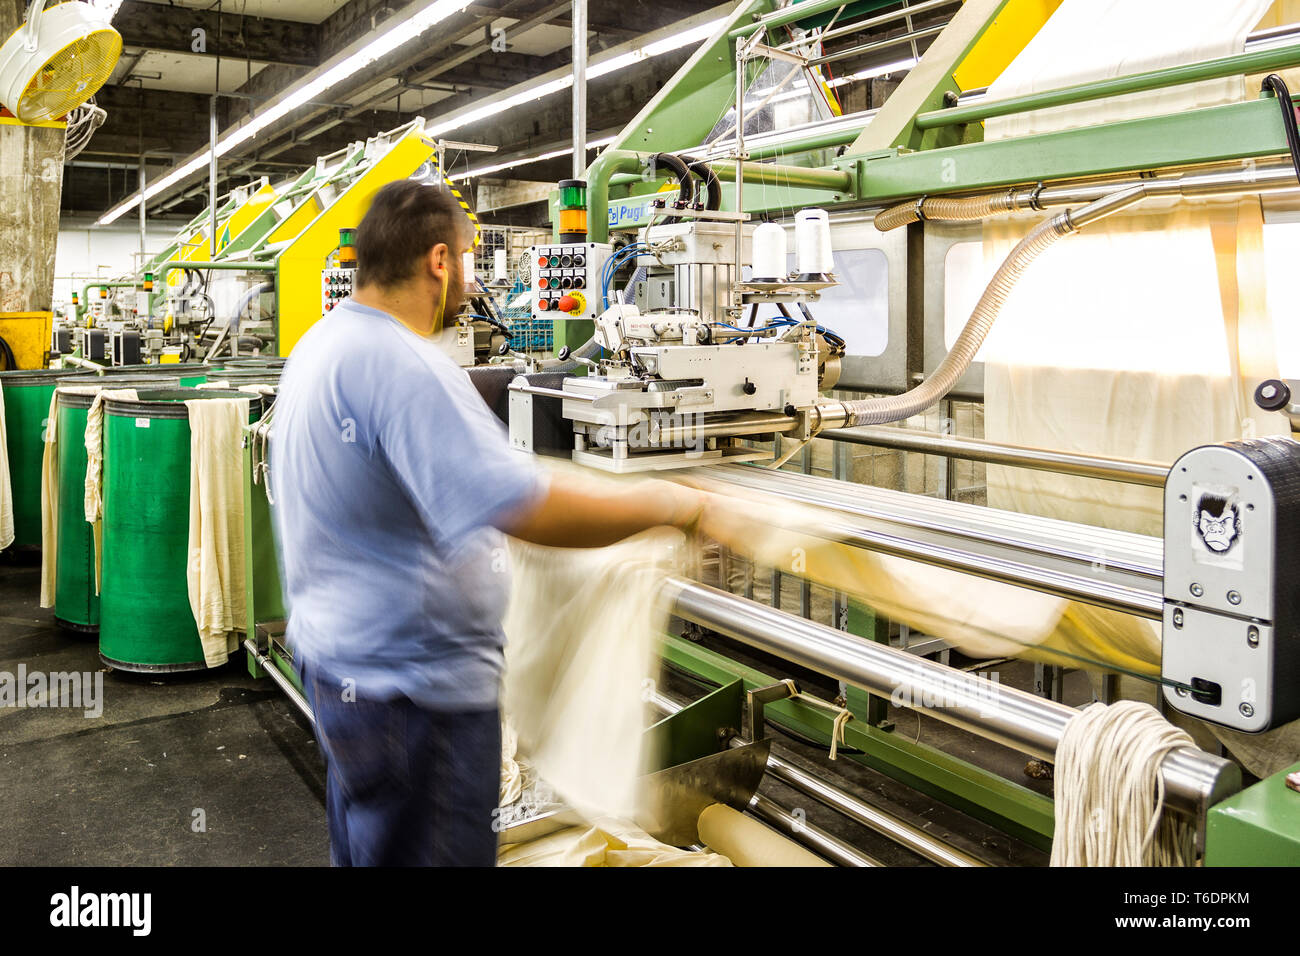 Textile Industry Stock Photos & Textile Industry Stock Images - Alamy